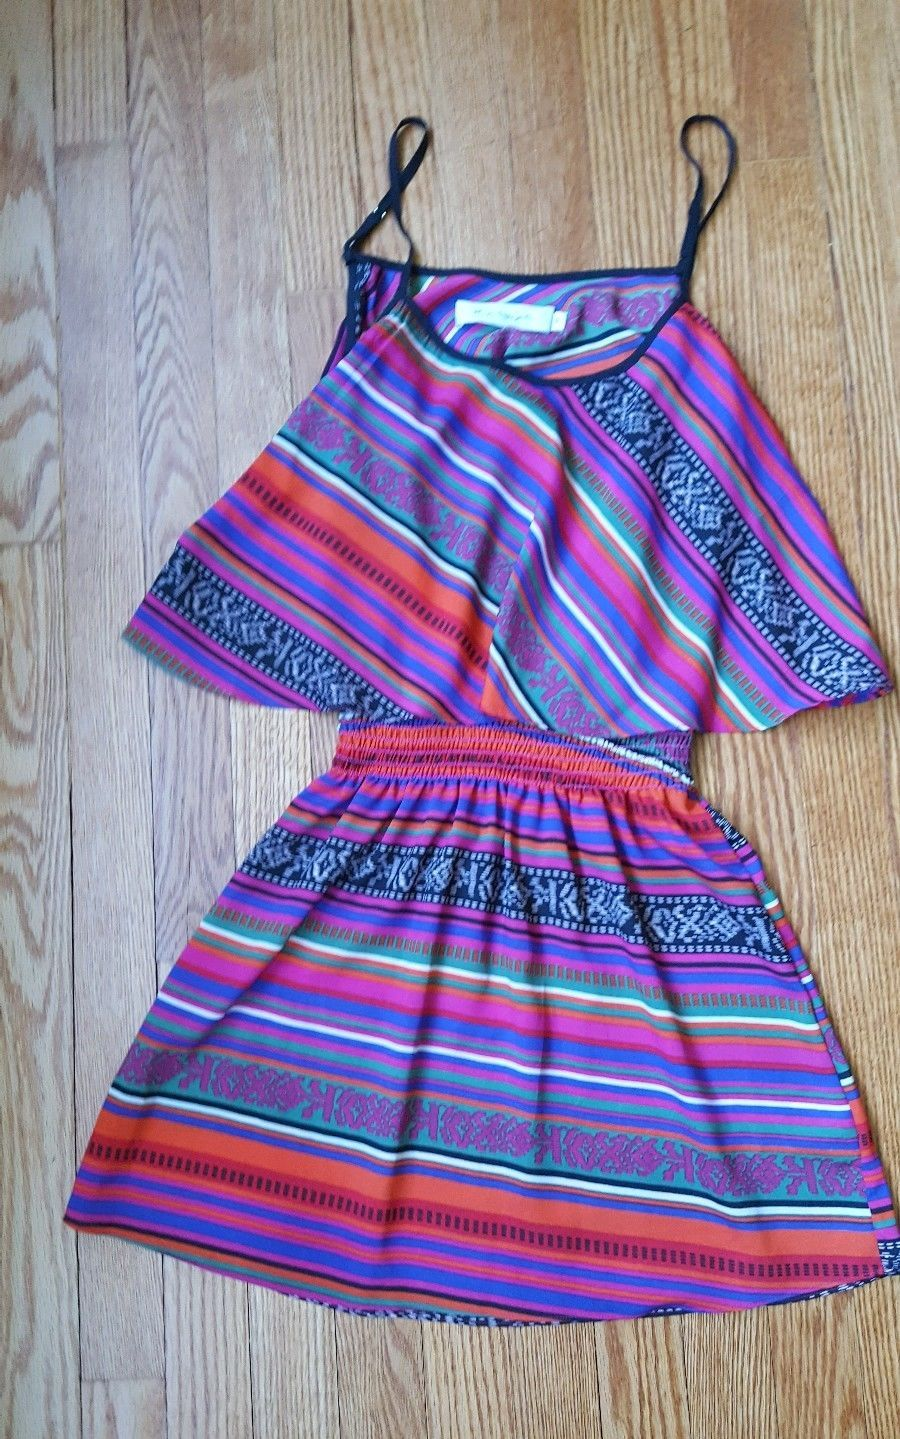 T-bags Los Angeles Womens Sphaghetti Strap open Back Dress Size Small Silk